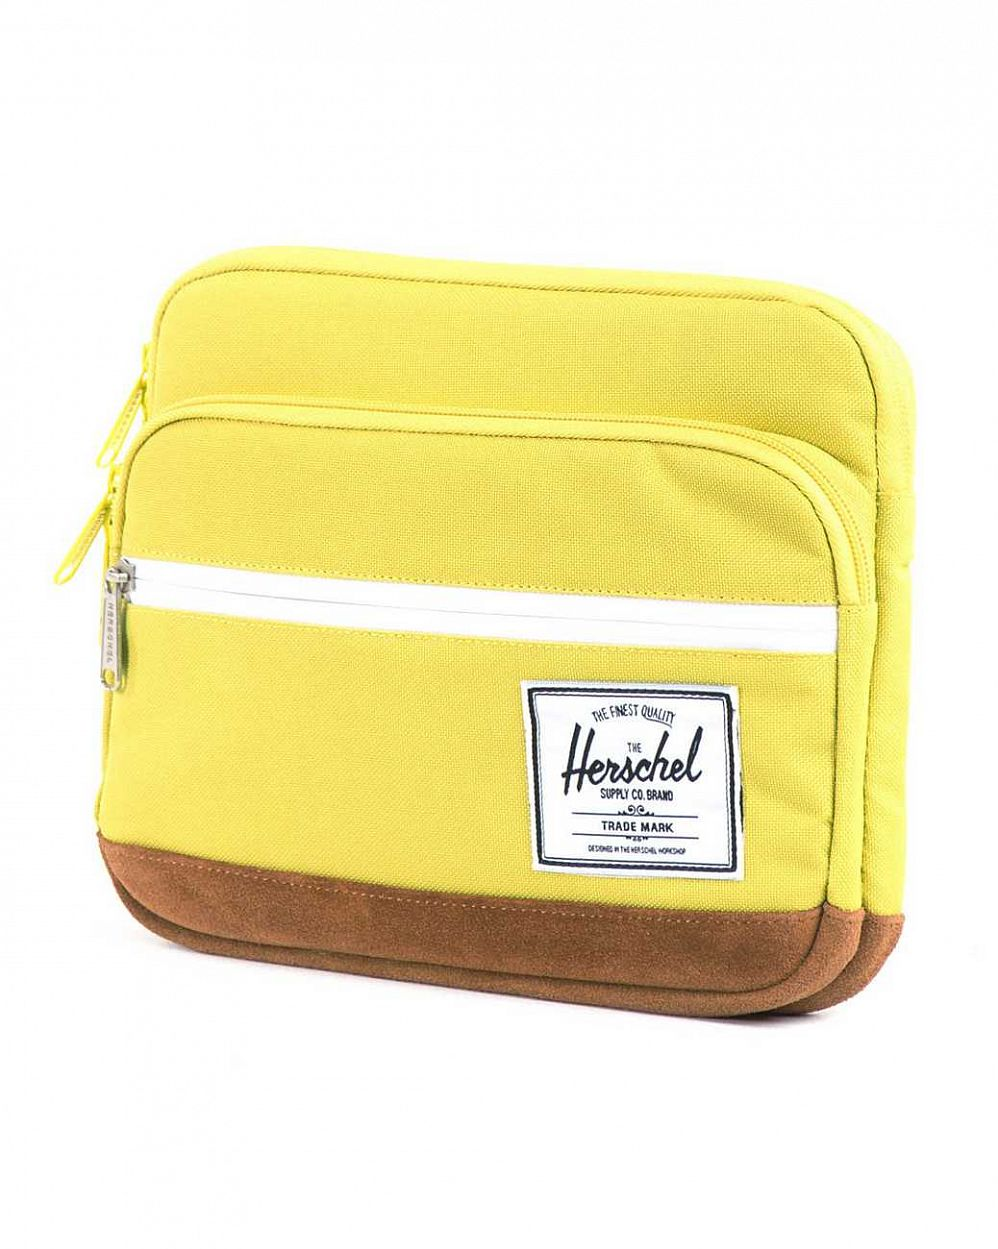 Чехол Herschel Pop Quiz Sleeve для iPad Lime Punch (10057) интернет-магазин в Москве